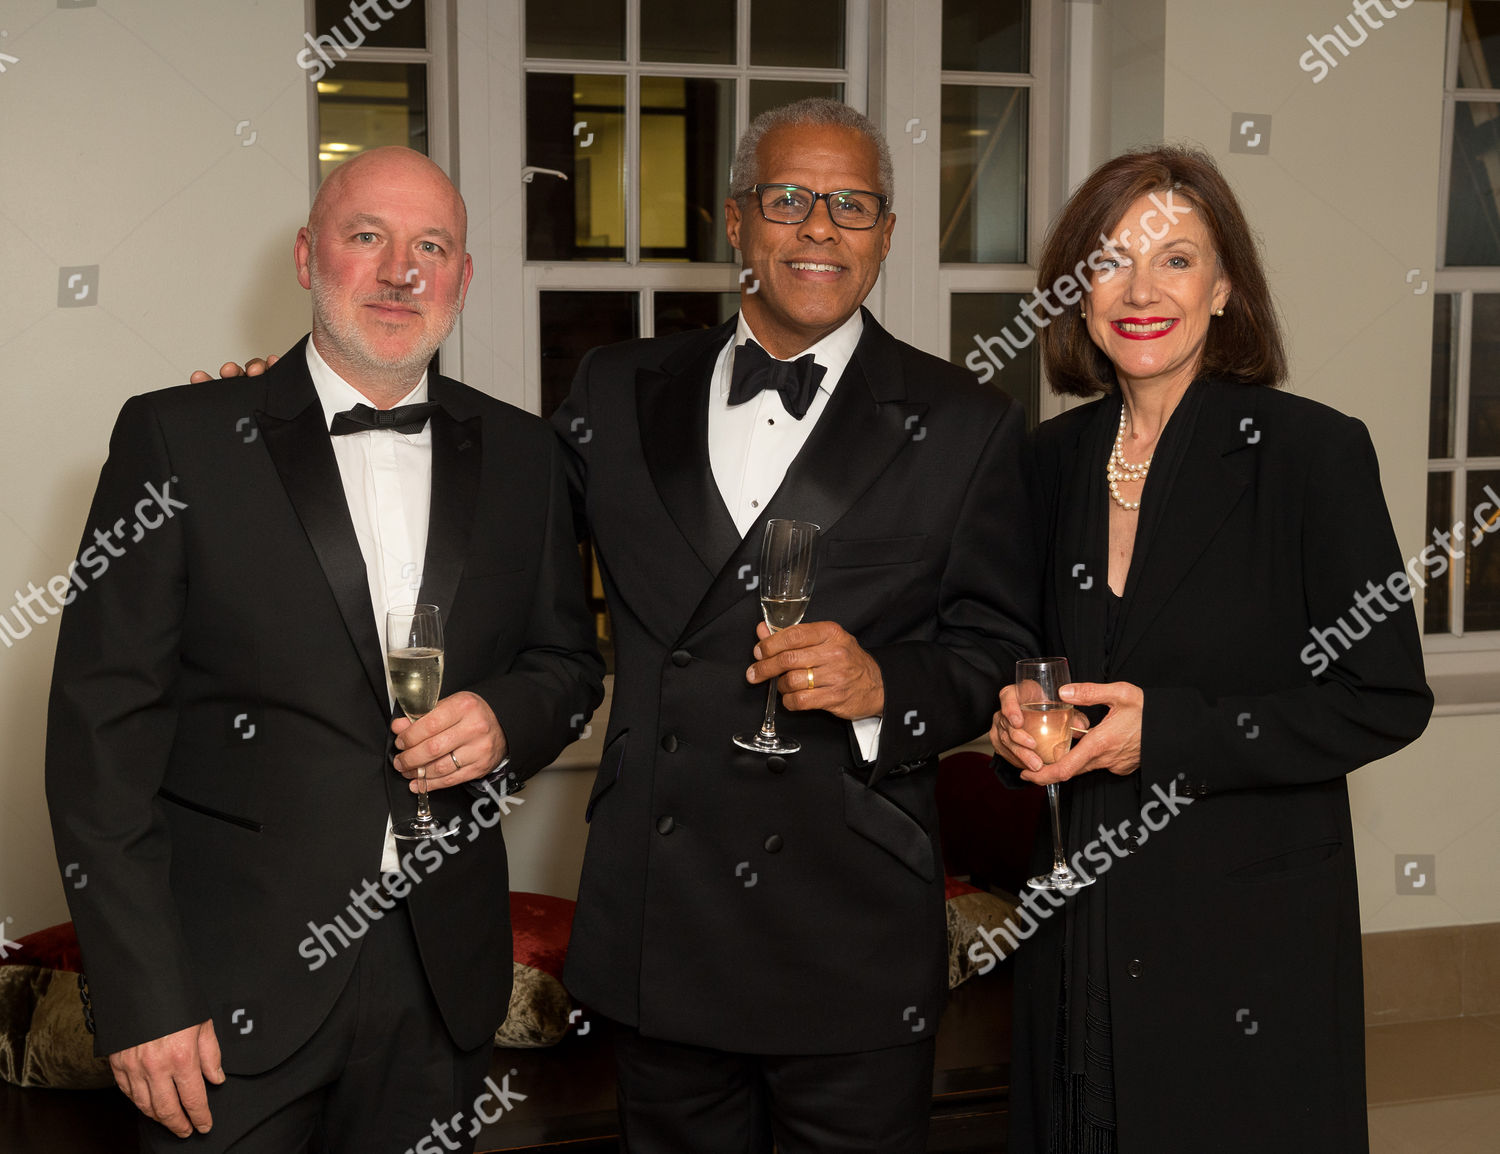 Stock photo of Ovalhouse fundraising event at The May Fair Hotel, London, UK - 29 Sep 2016